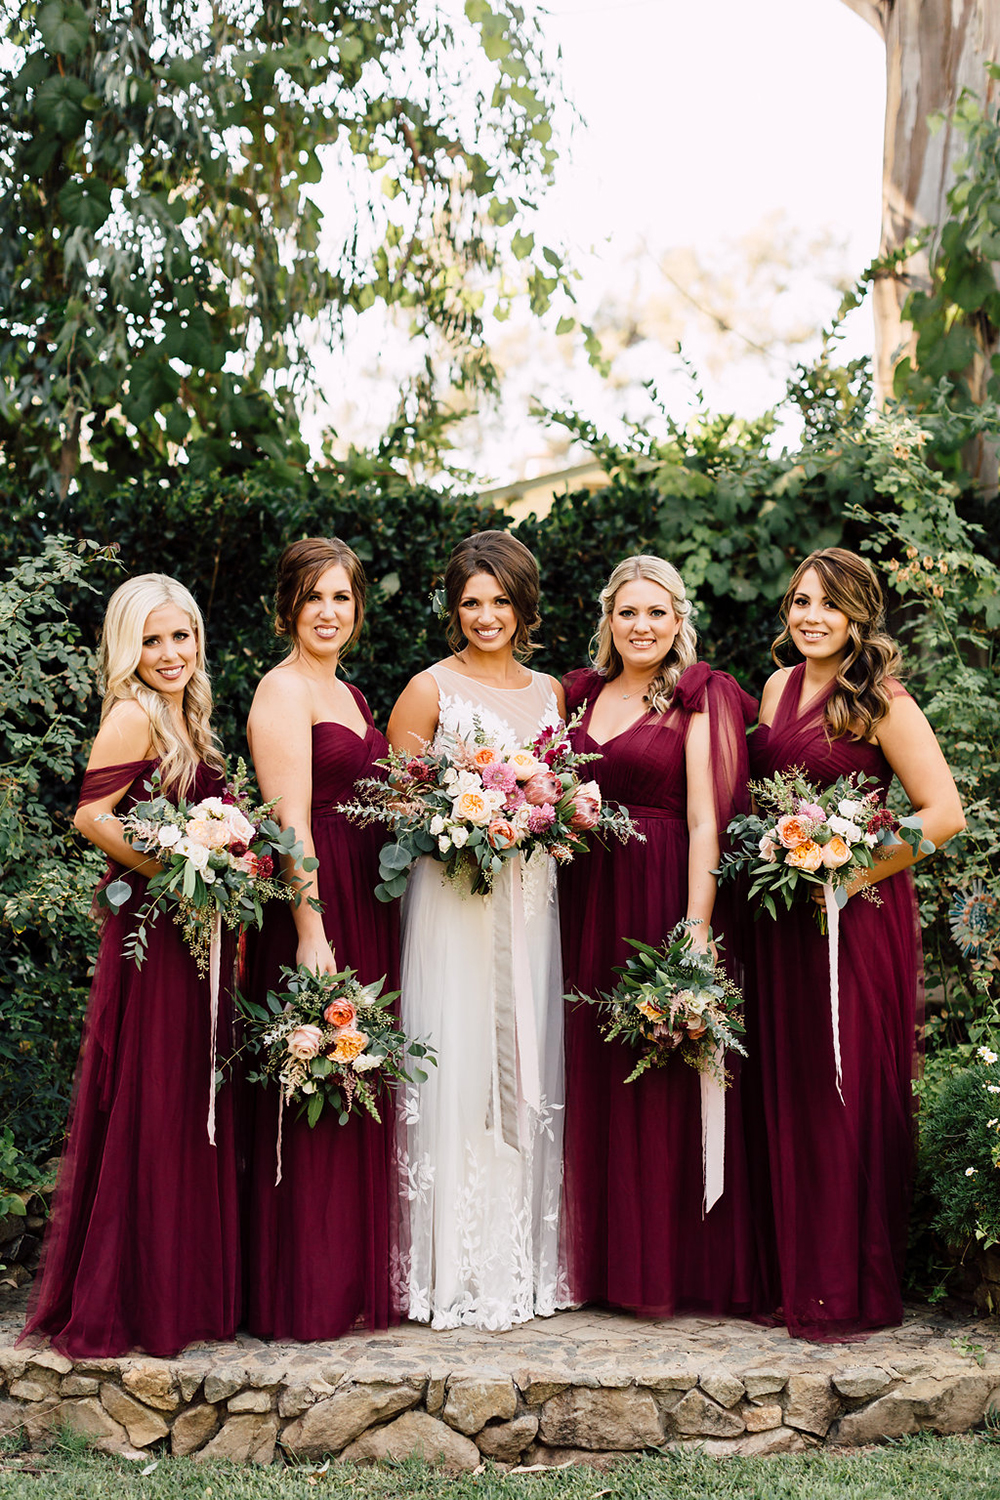 burgundy bridesmaid dresses - 20 of our Most Pinned Weddings - photo by Plum and Oak https://ruffledblog.com/20-of-our-most-pinned-weddings